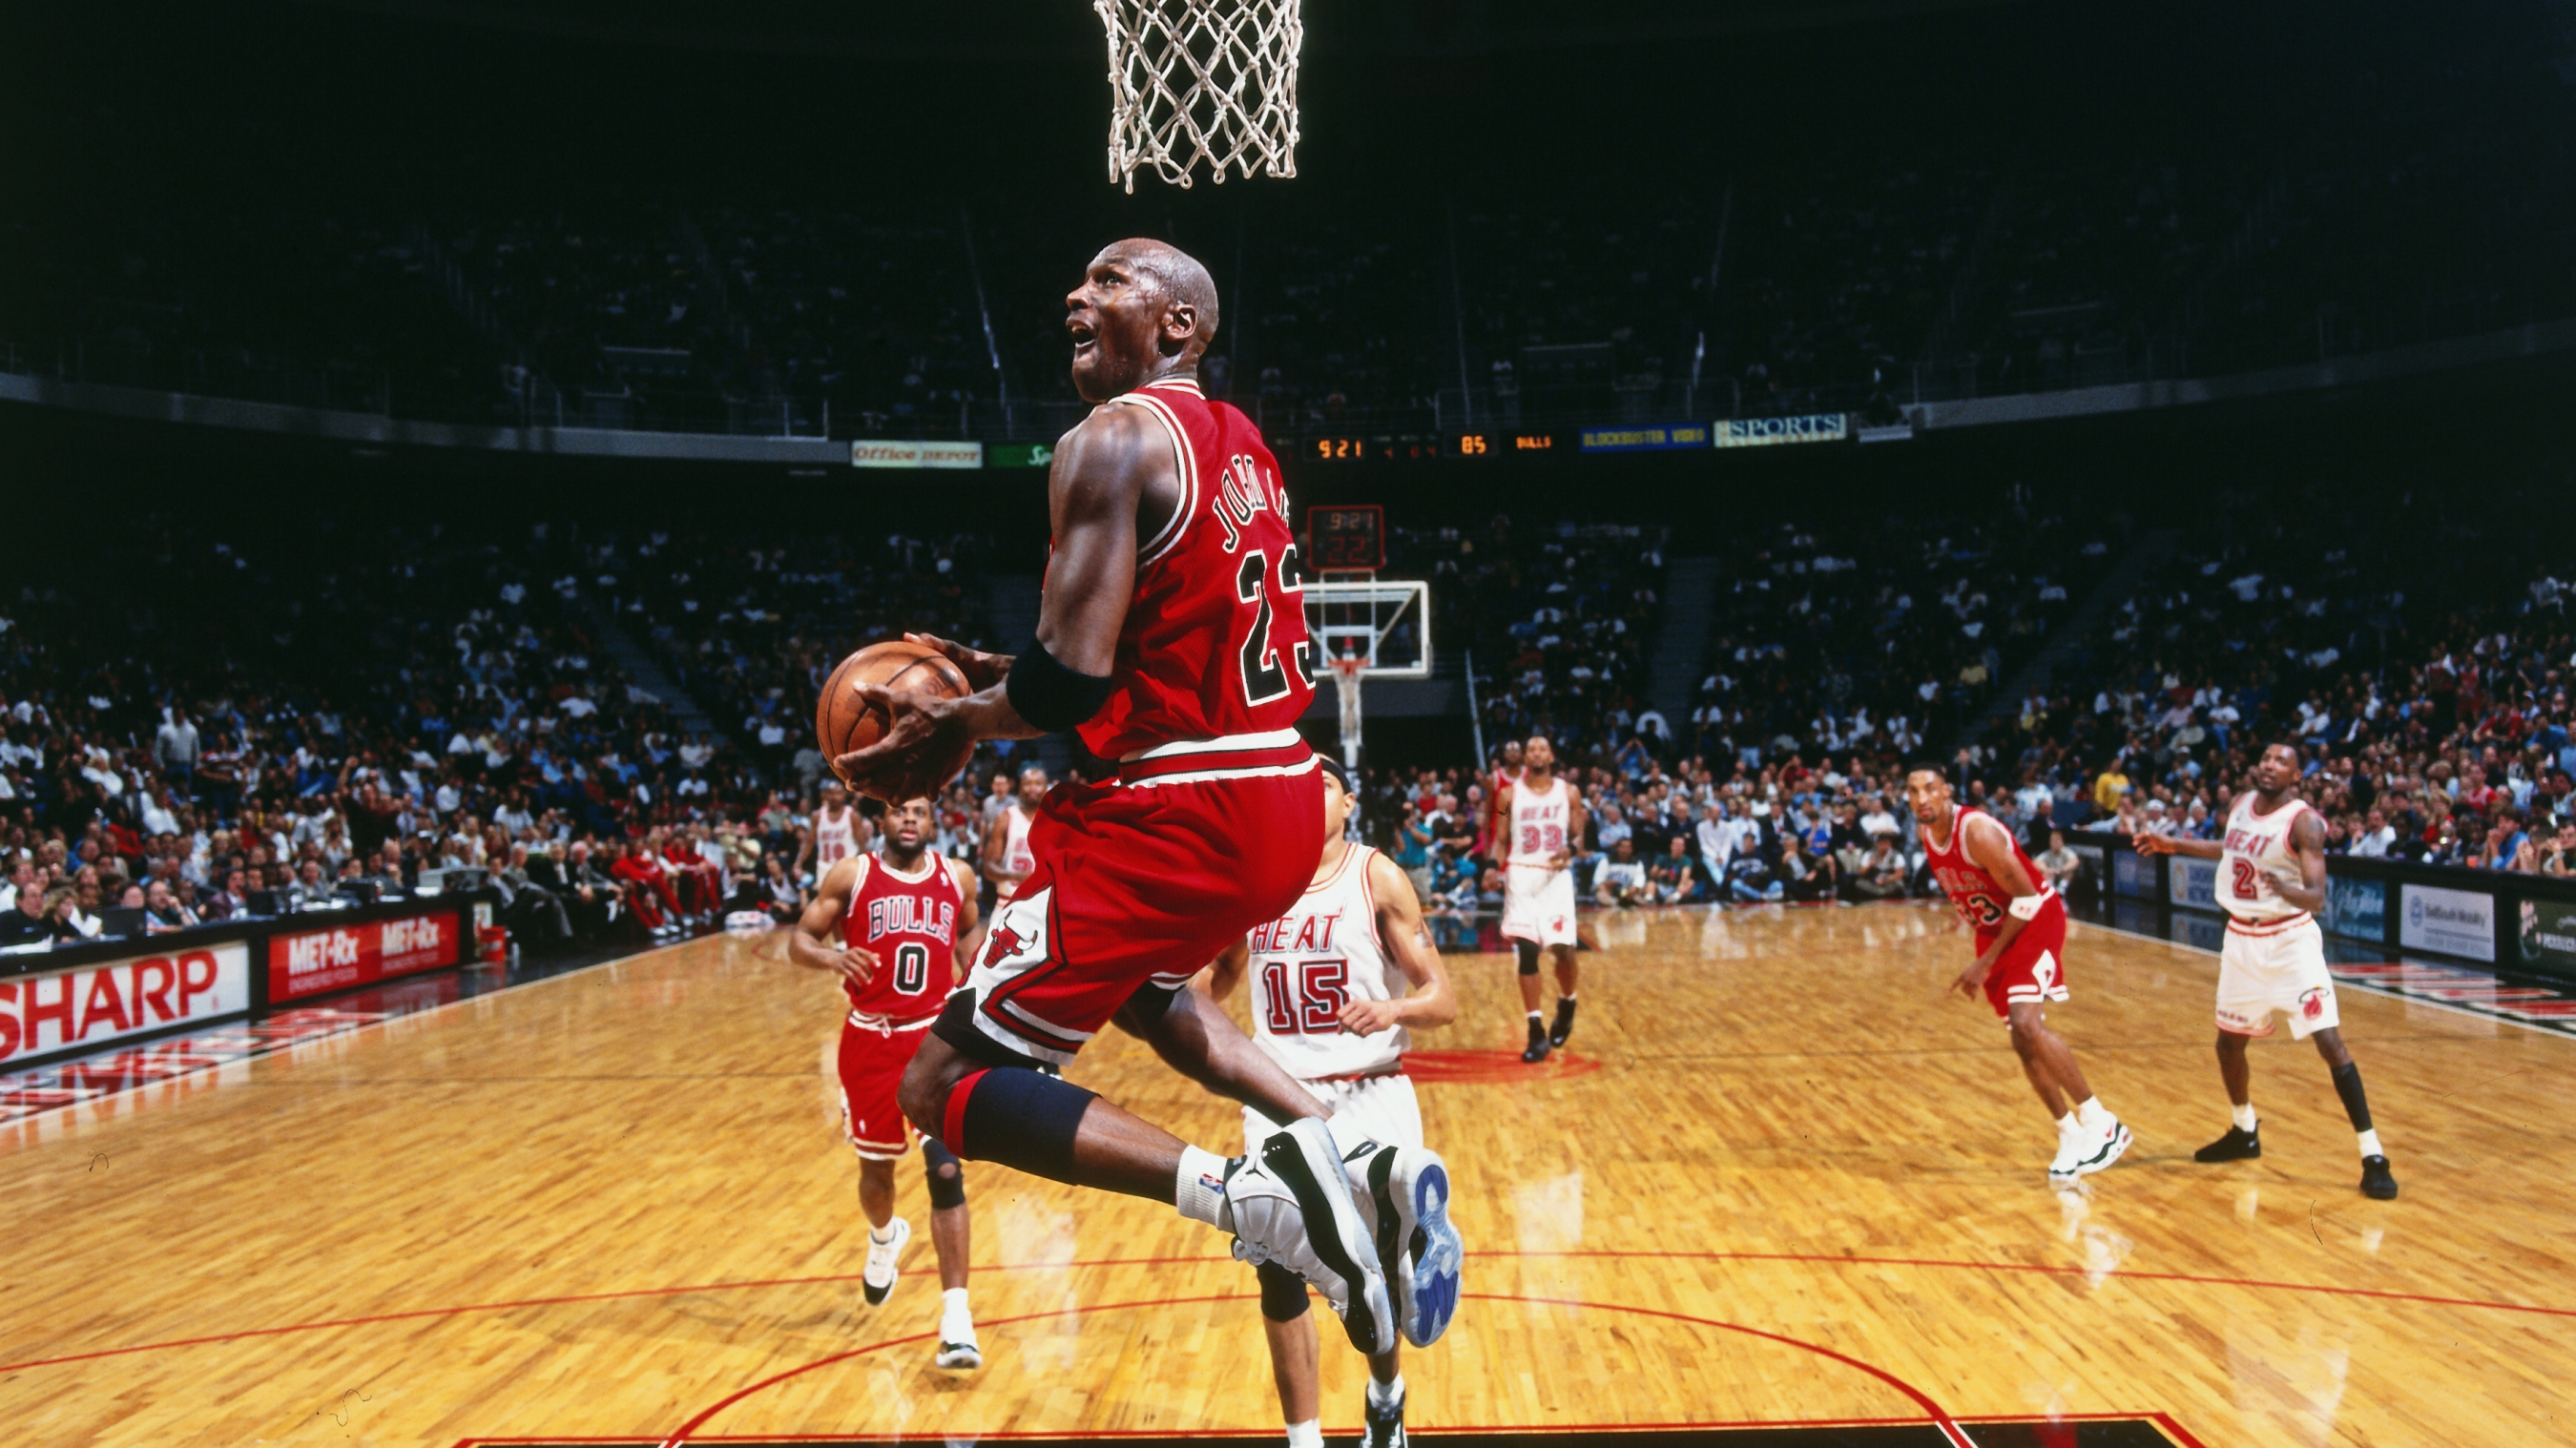 062126b490c Start with the shorts: Why Jordan tops our list of NBA game changers